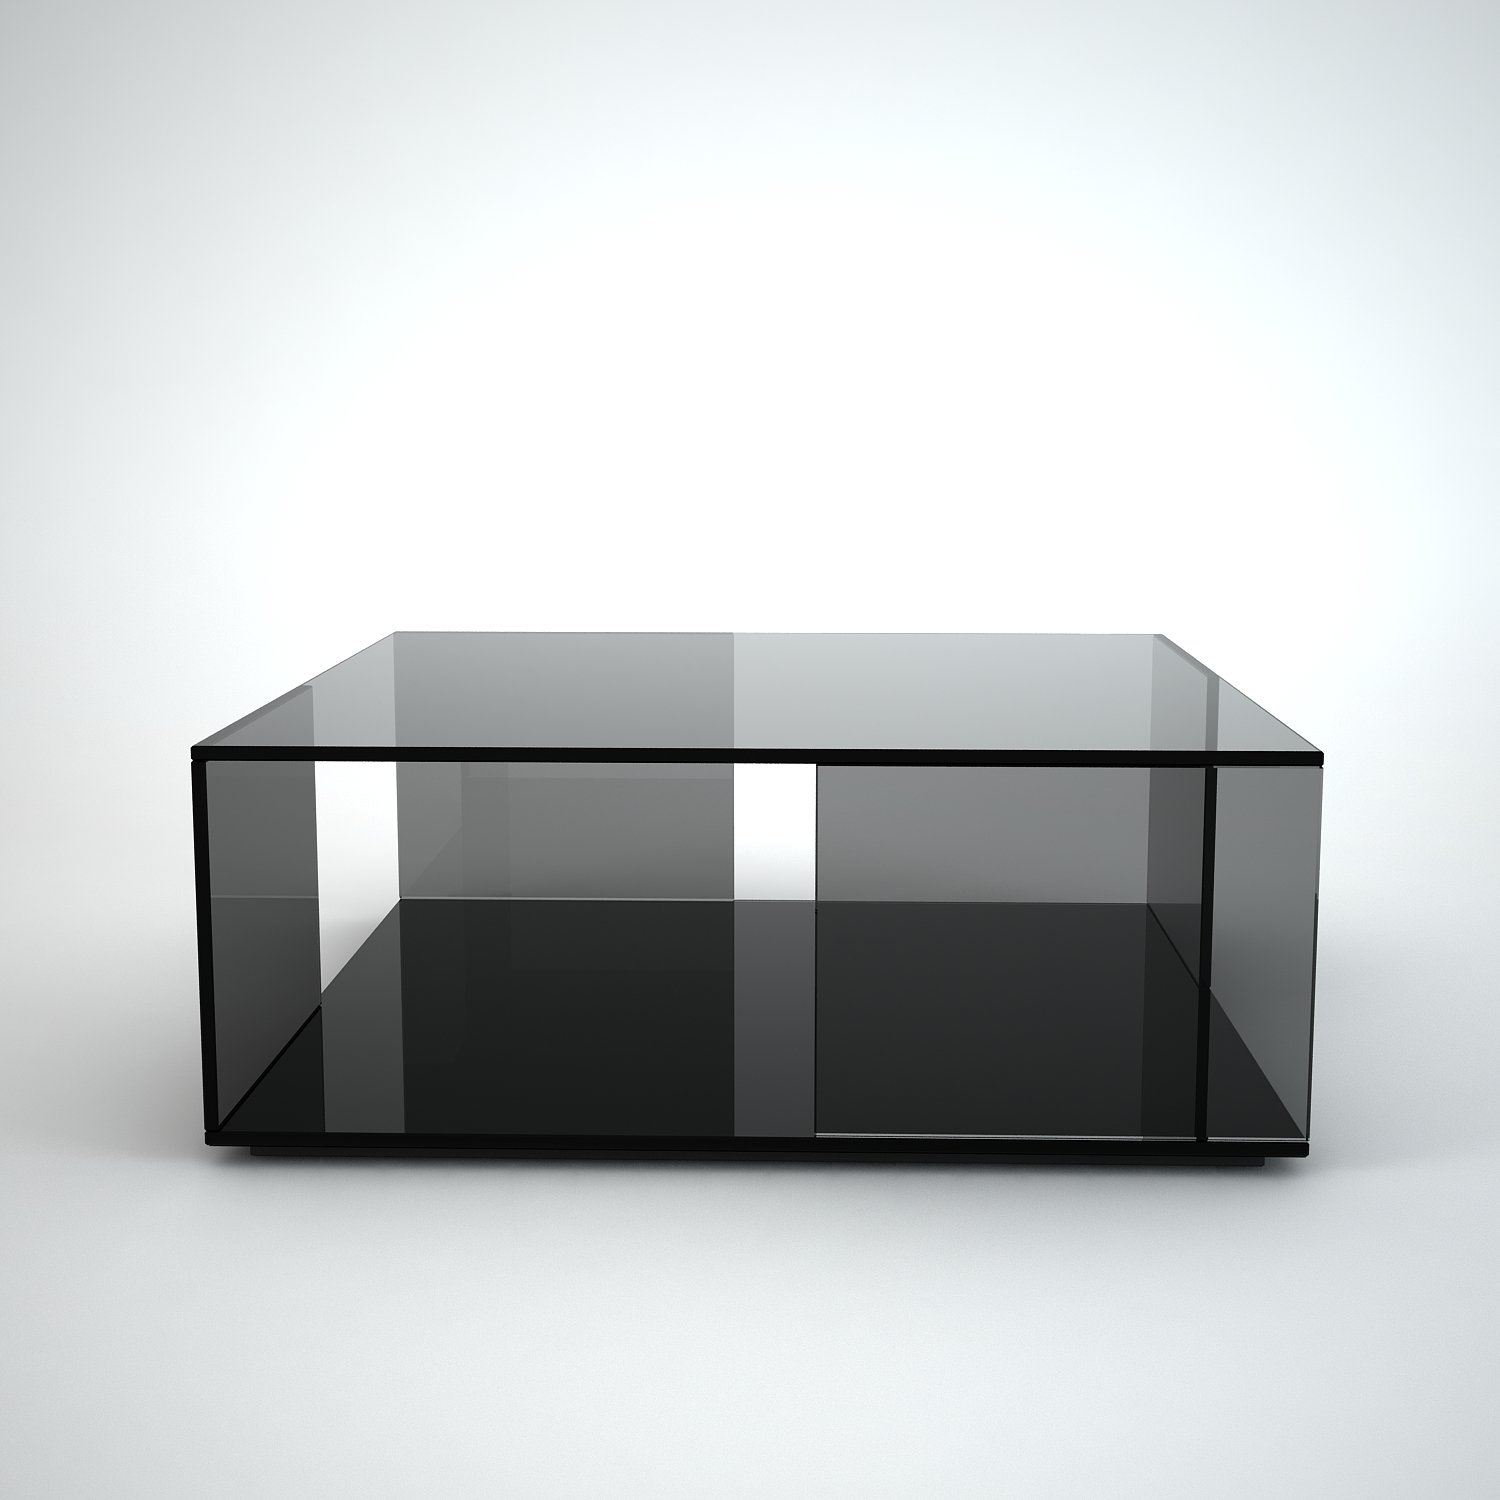 Tifino Square Grey Tint Glass Coffee Table by Klarity Klarity